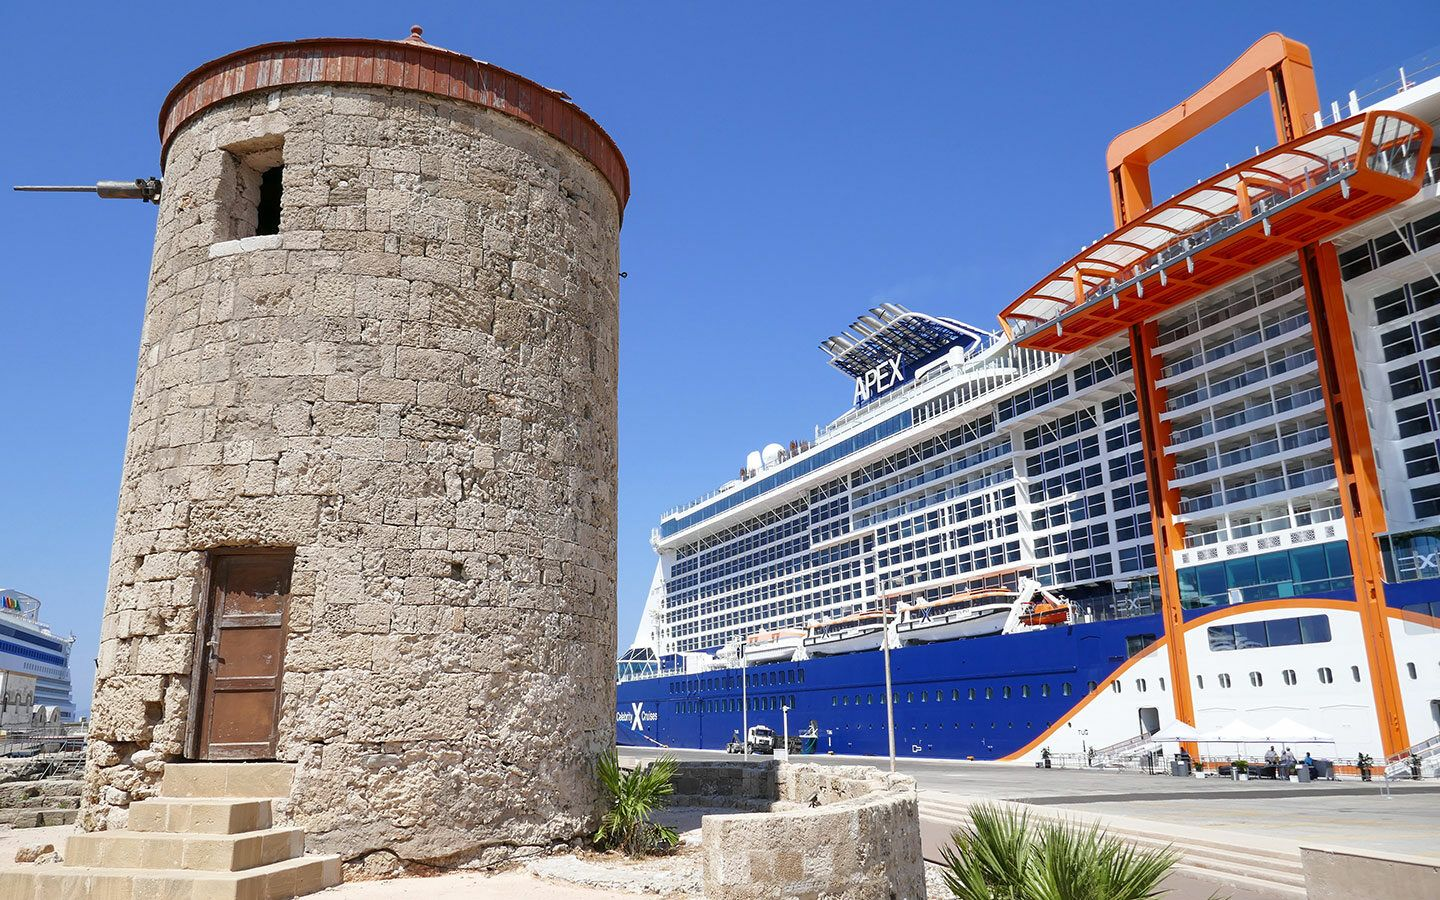 Celebrity Apex cruise ship in Rhodes Town